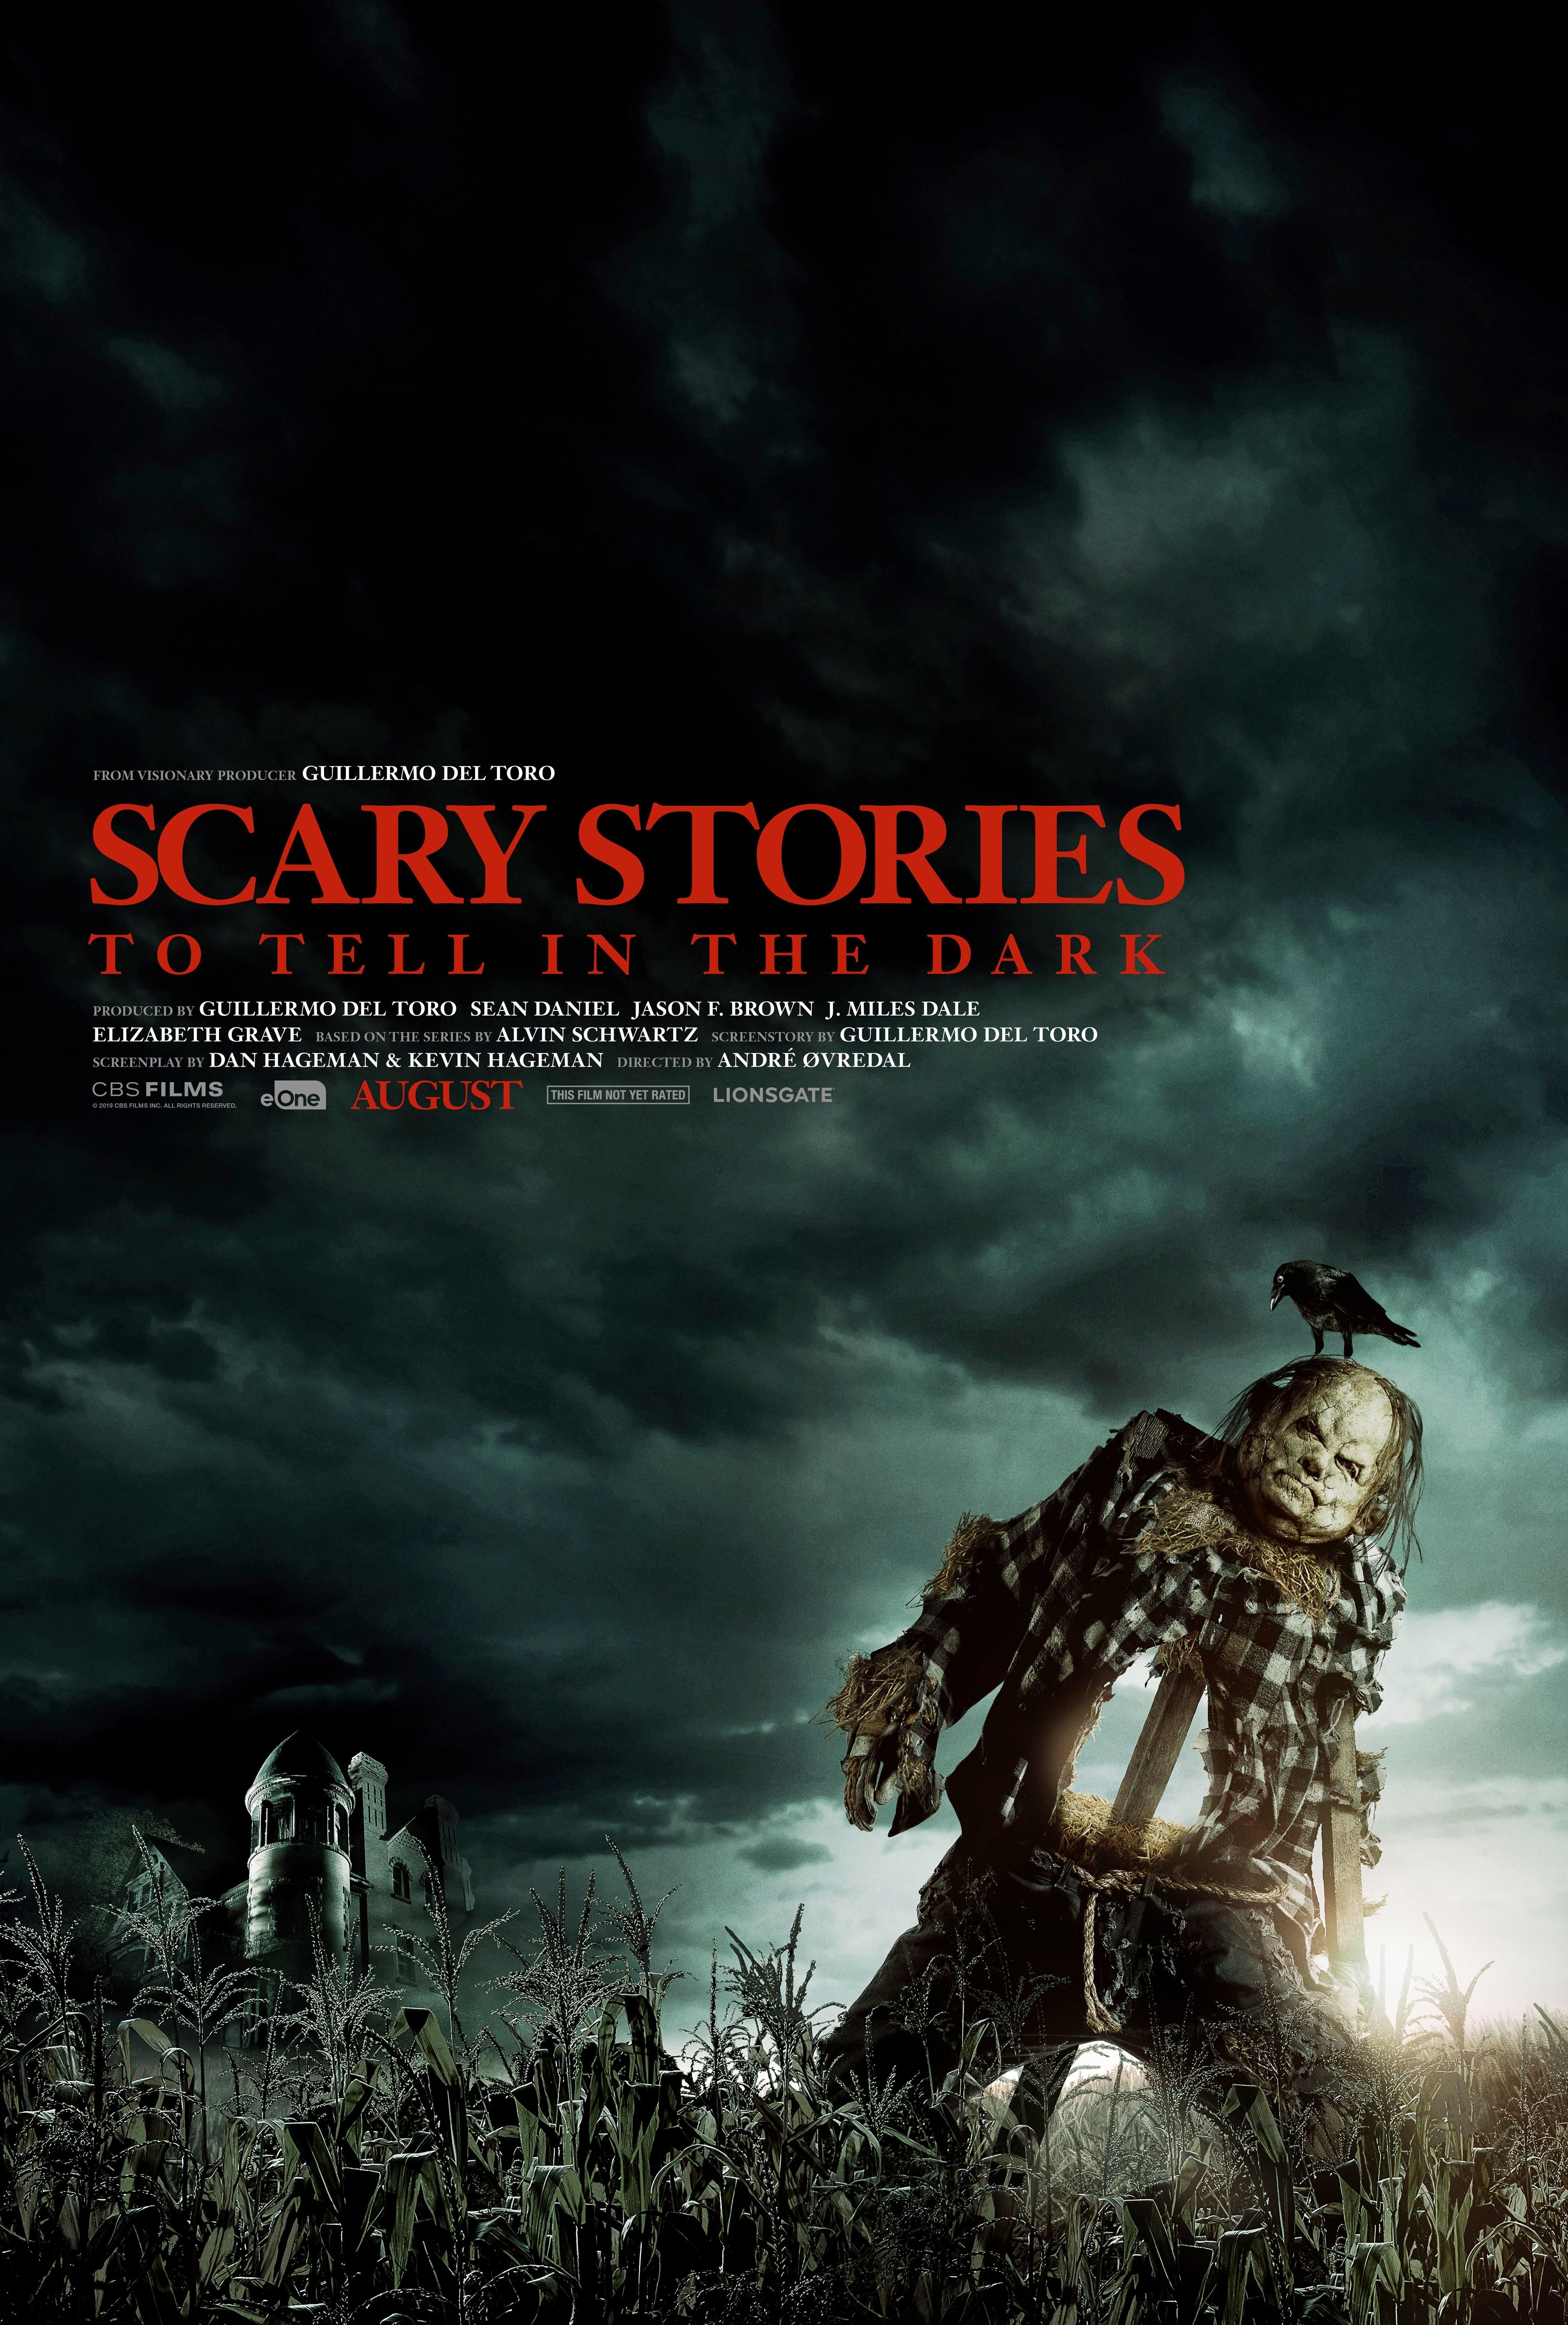 Everything You Need To Know About 'Scary Stories To Tell In The Dark'